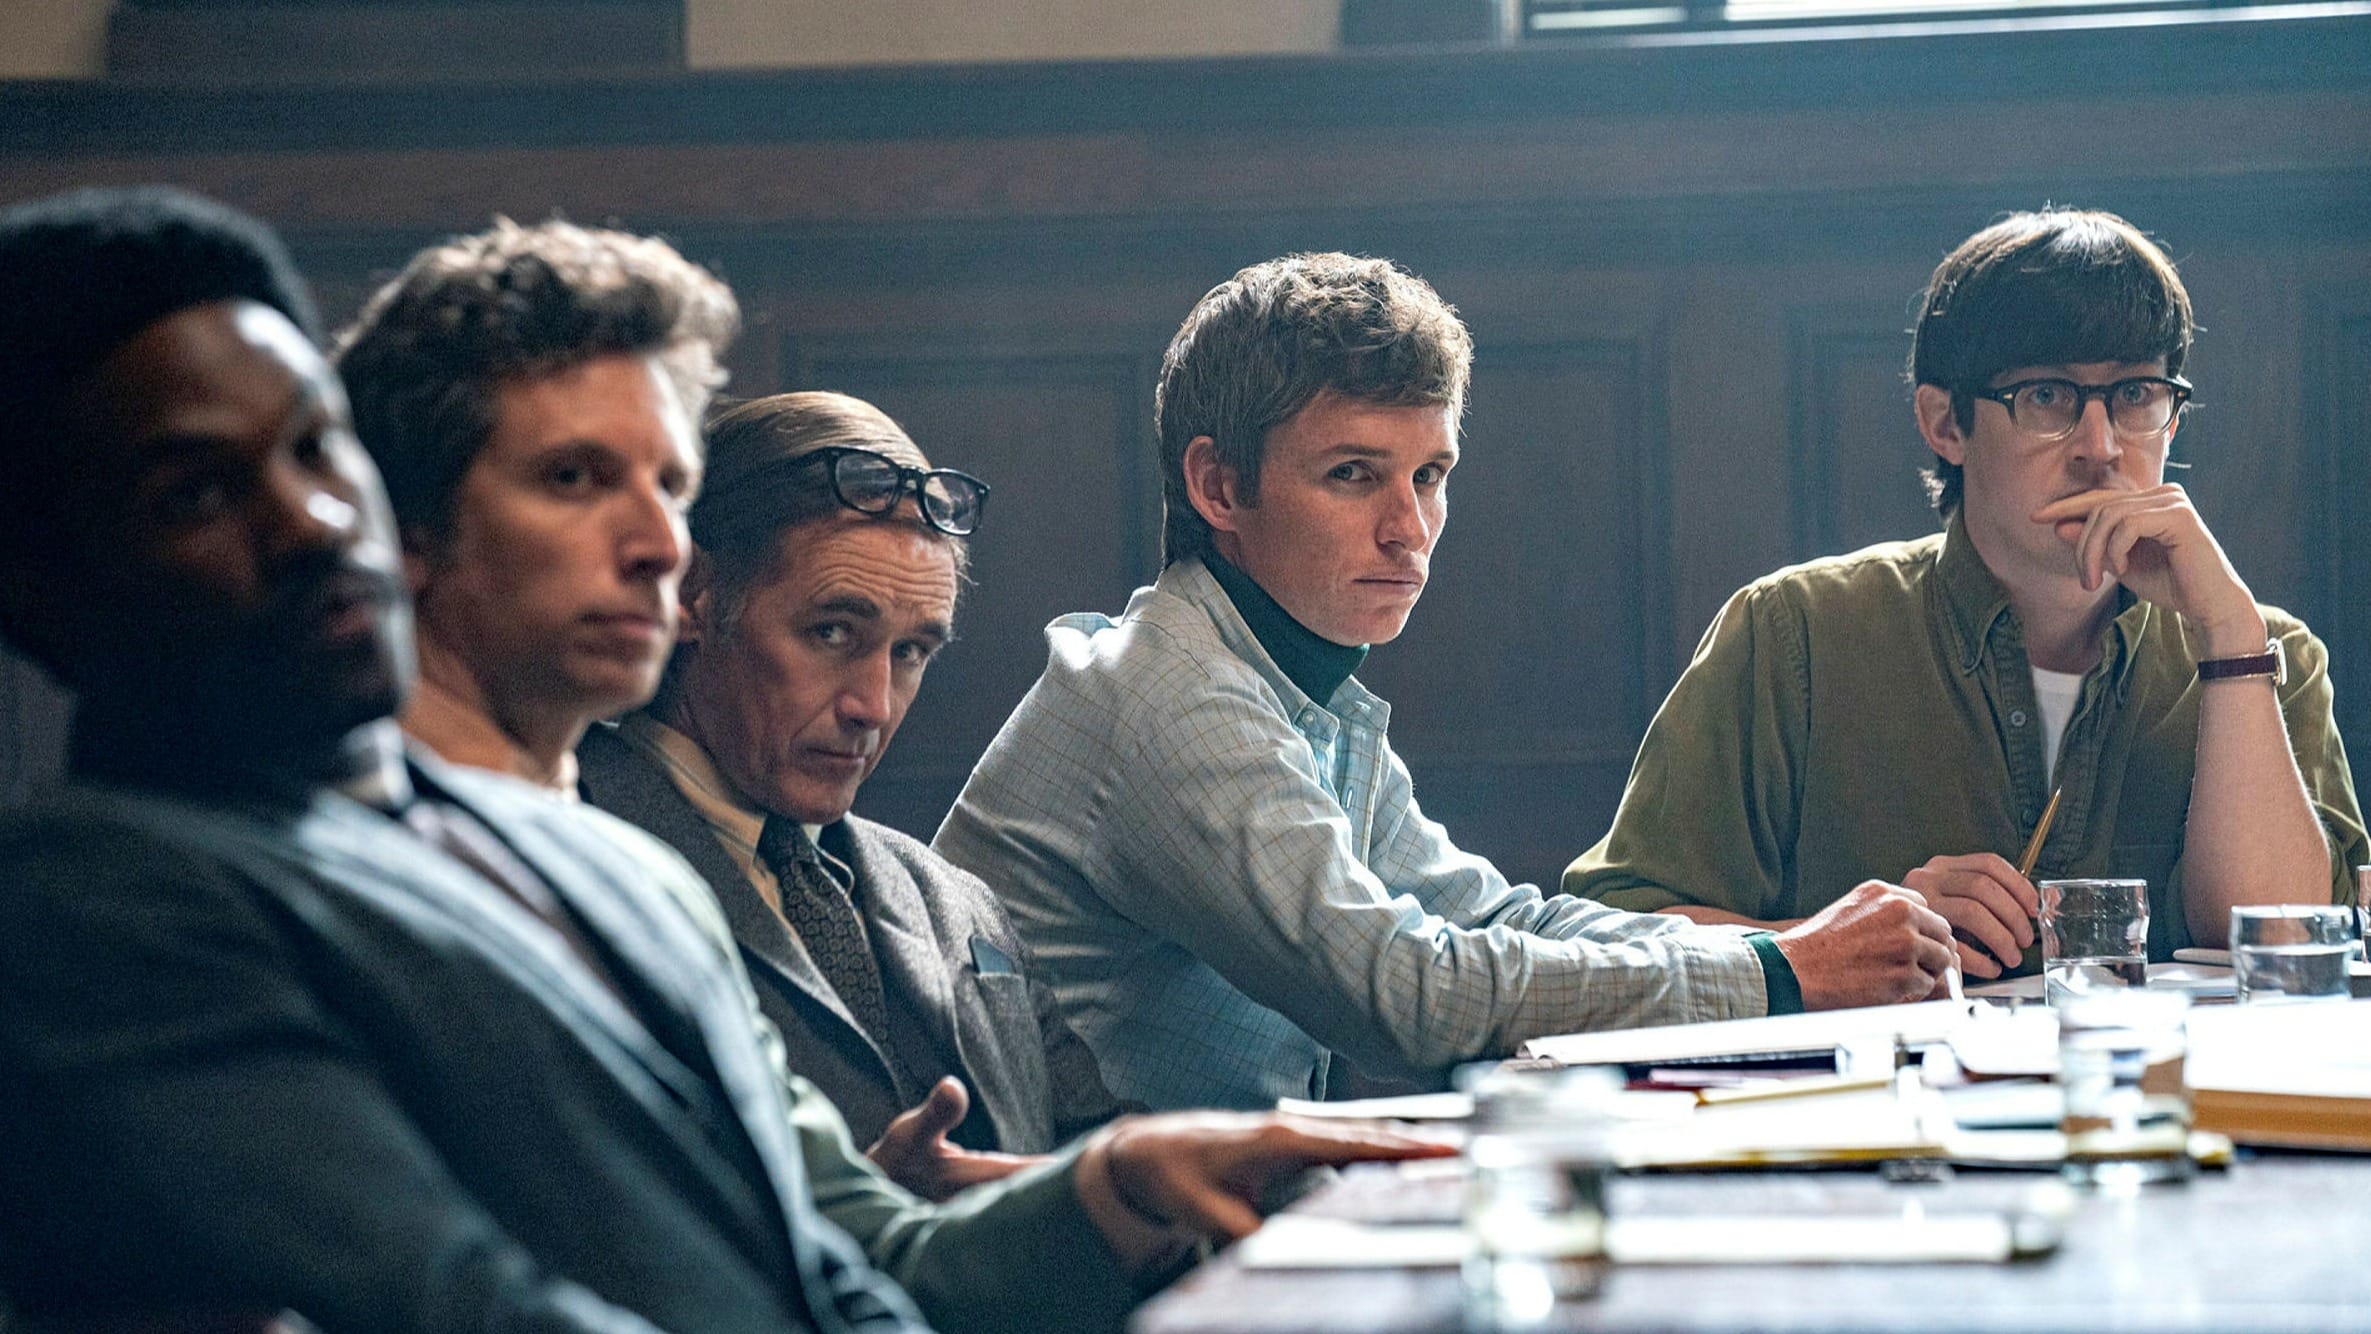 Oscar 2021: The Trial Of The Chicago 7 Review - An Emotionally Charged And Compelling Legal Drama